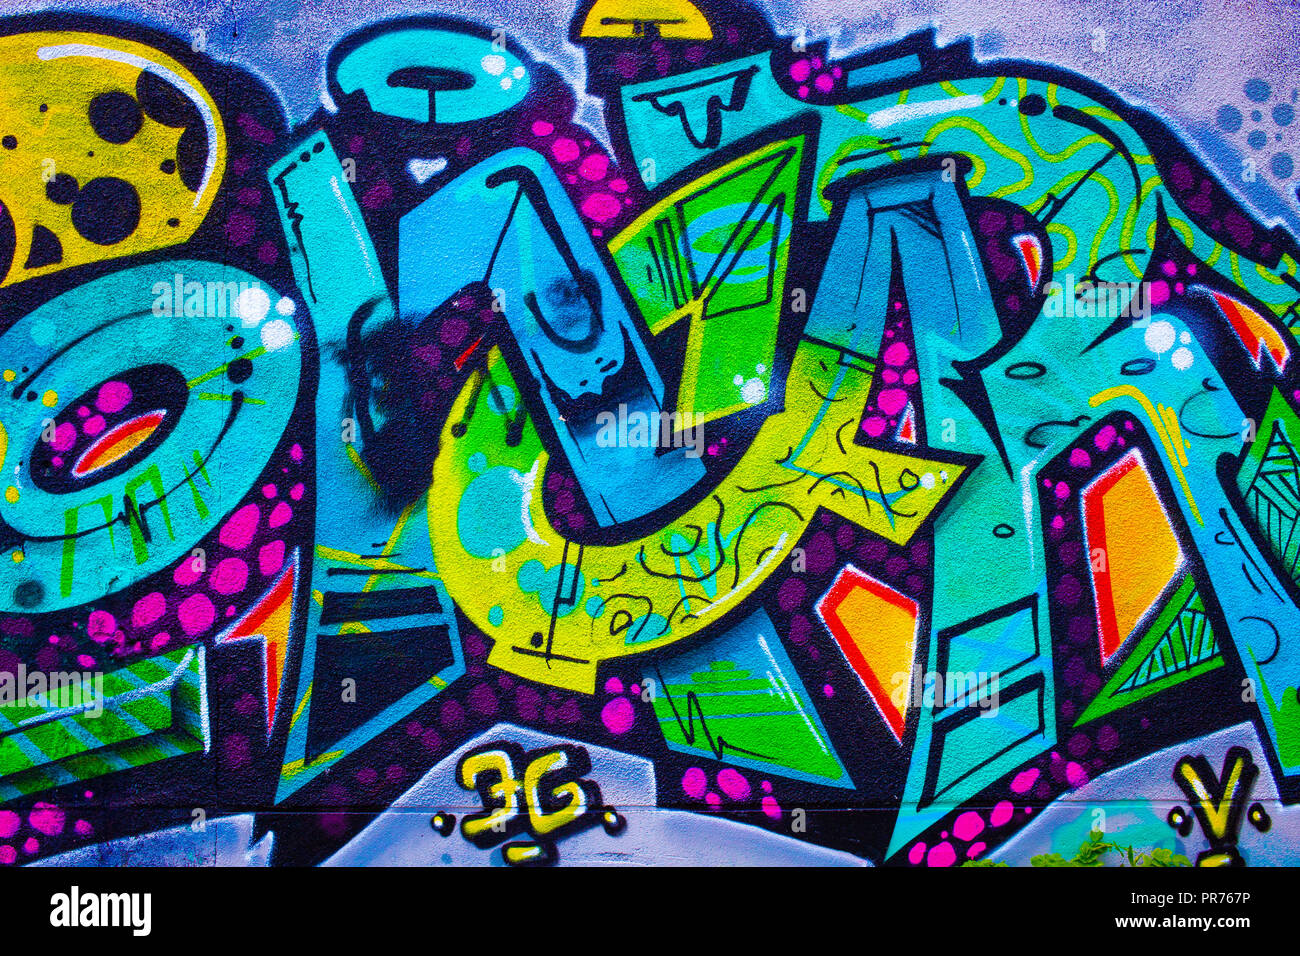 Detail Of A Colorful Graffiti On A Wall Abstract Background